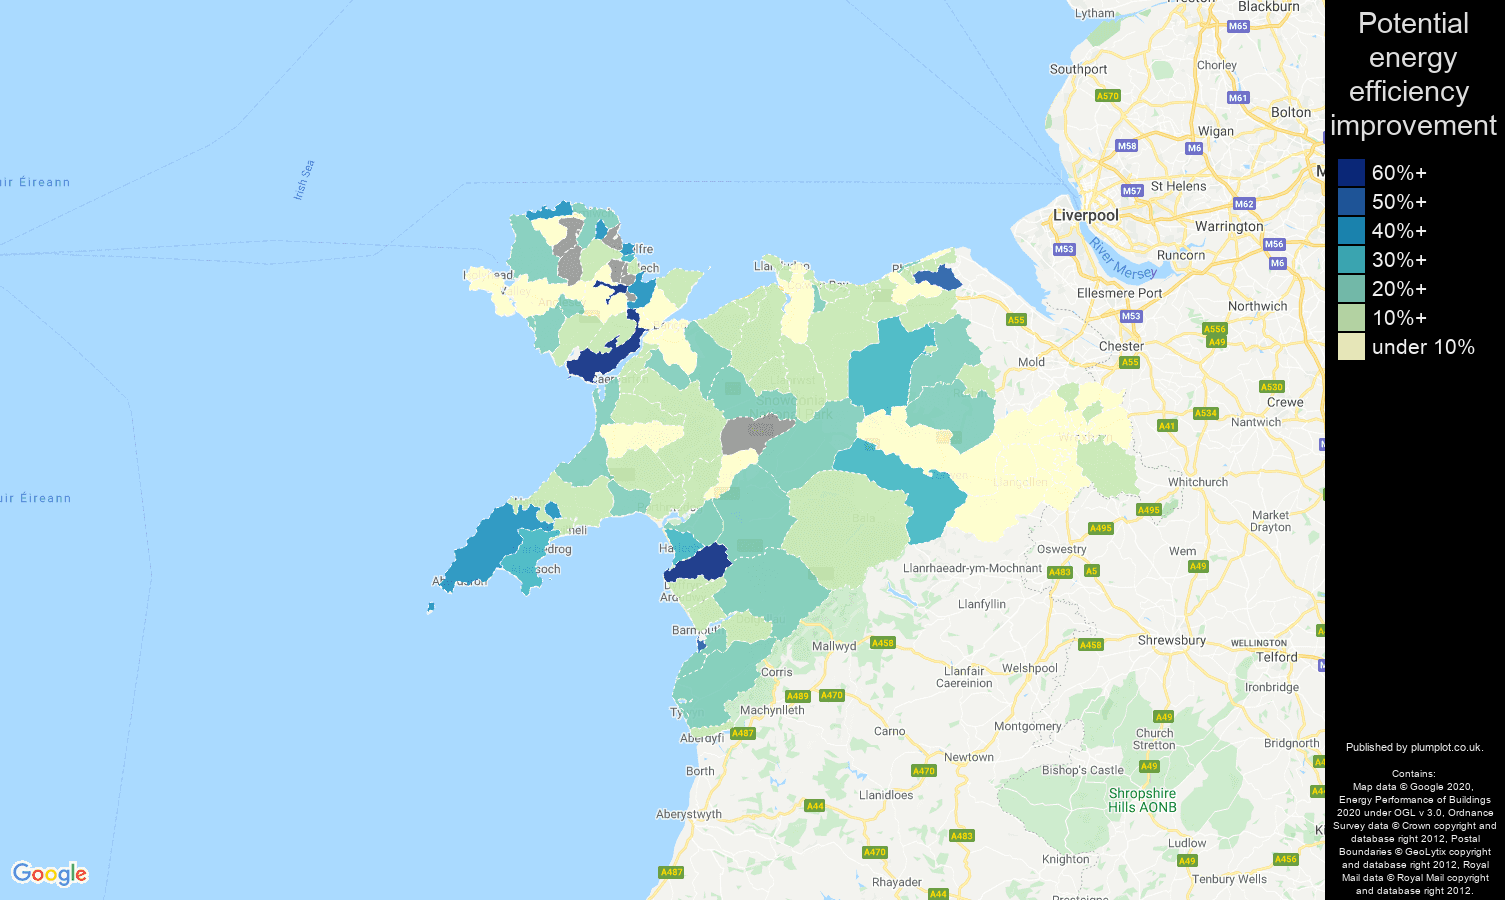 Llandudno map of potential energy efficiency improvement of flats